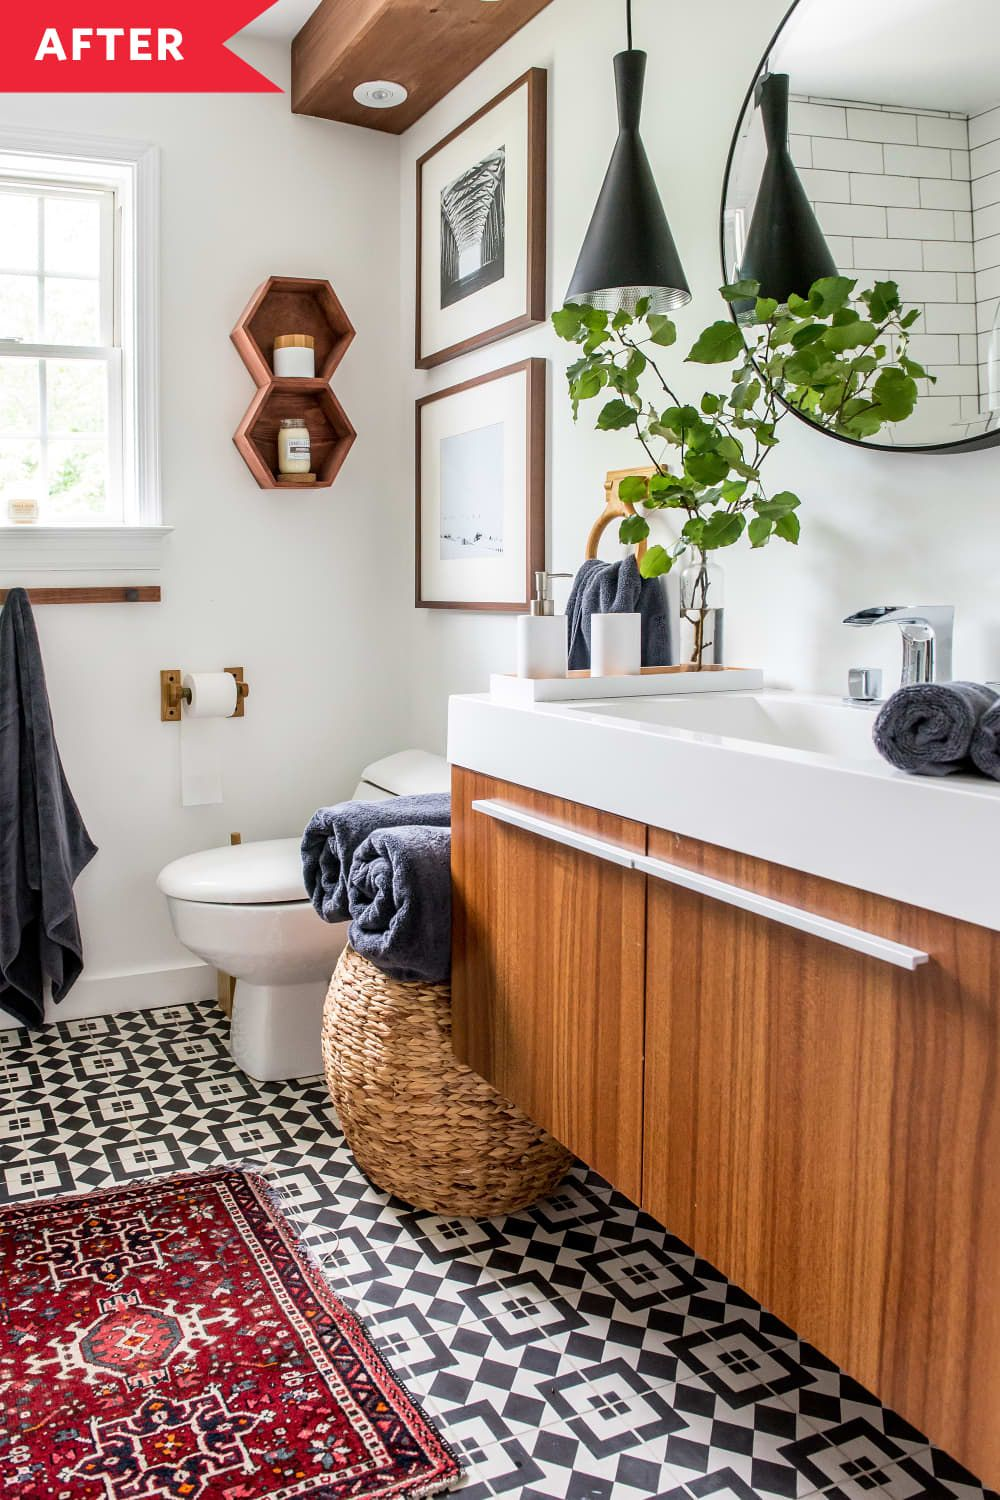 Before And After: An 'Old And Messy' Bathroom Becomes A